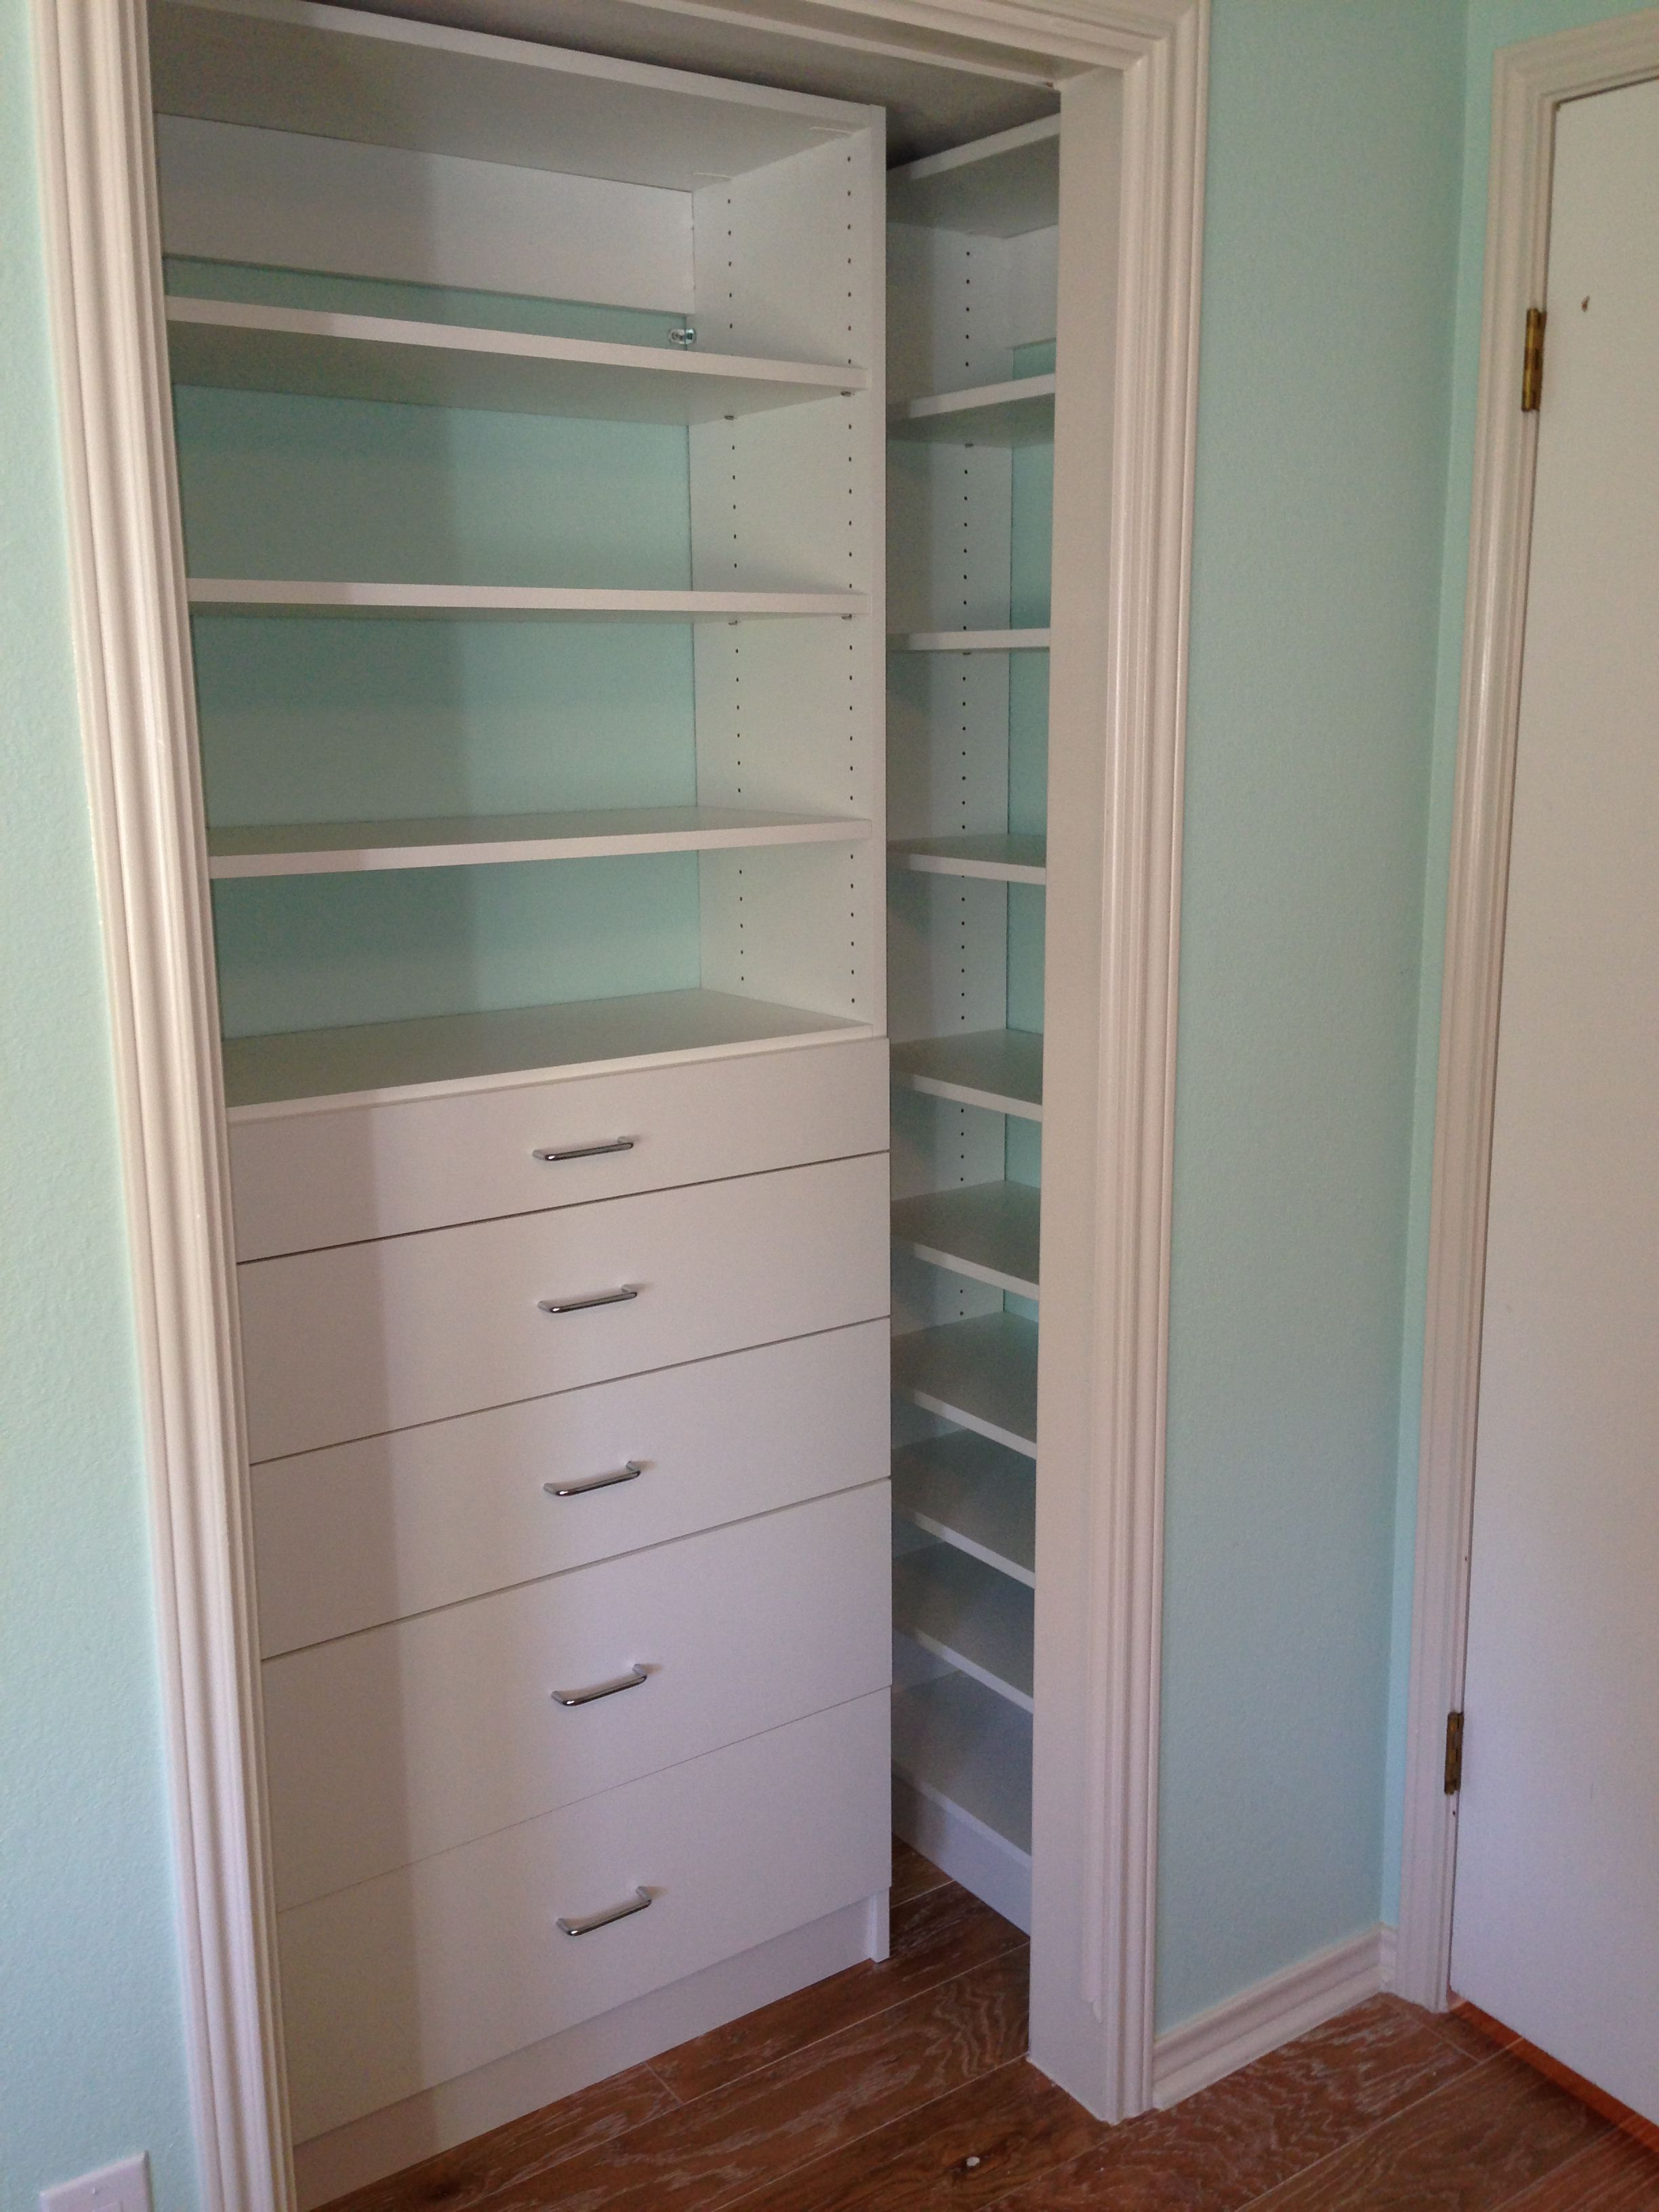 Reach In Closet System With Drawers And Shelves Wide